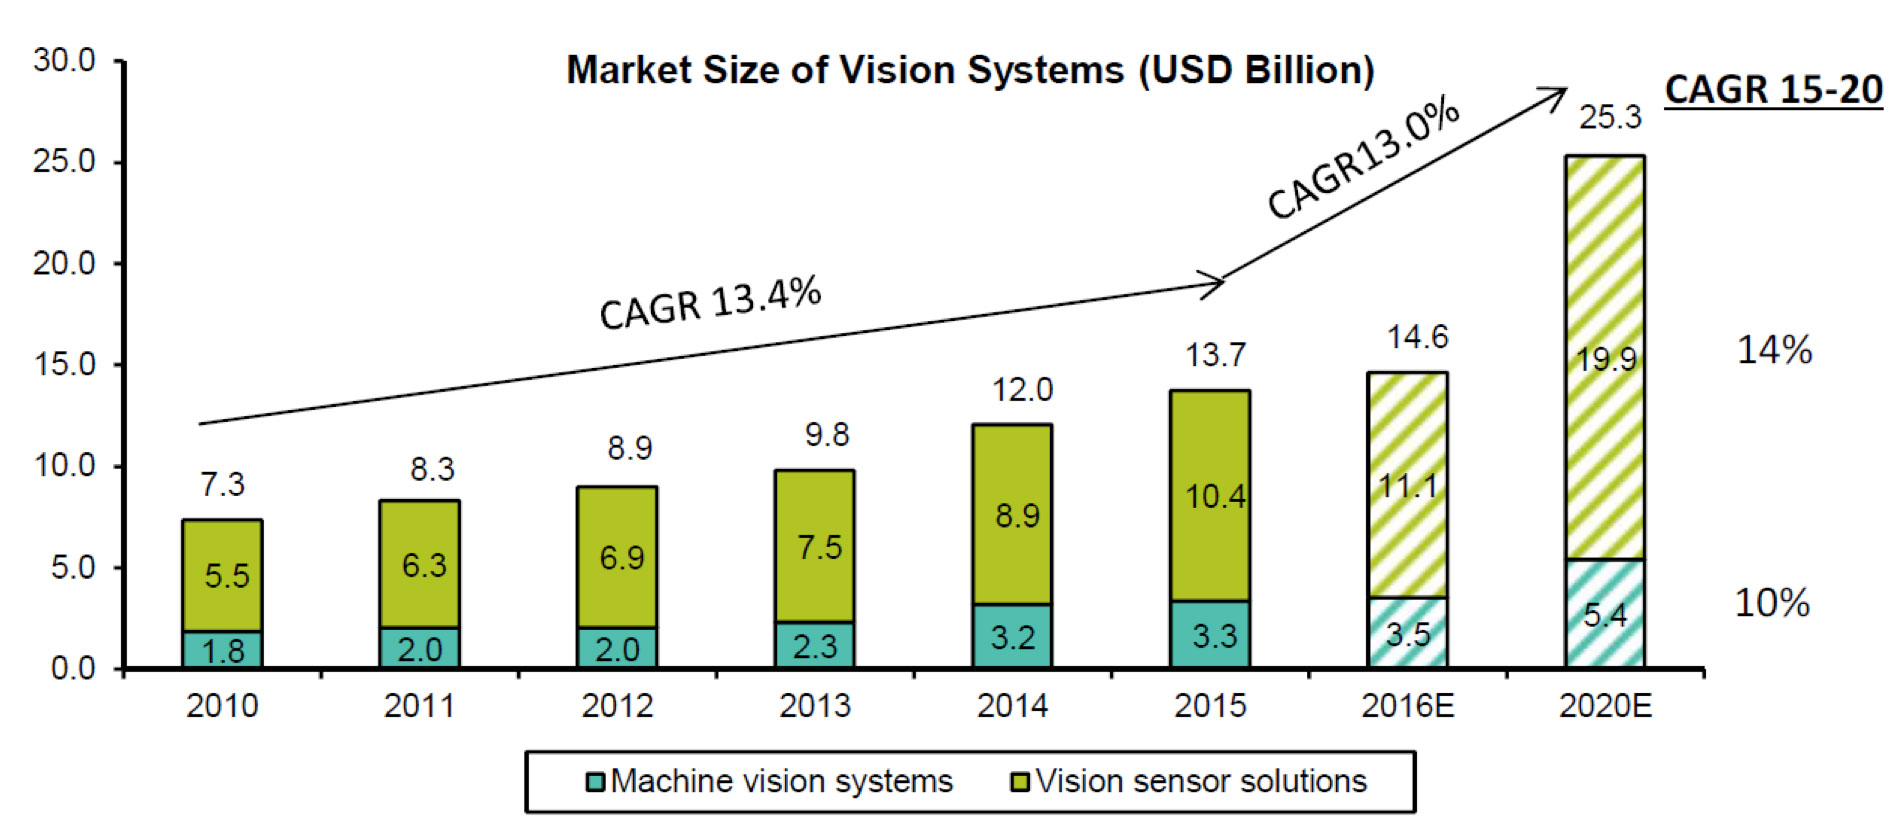 hight resolution of exhibit 2 market size of vision systems